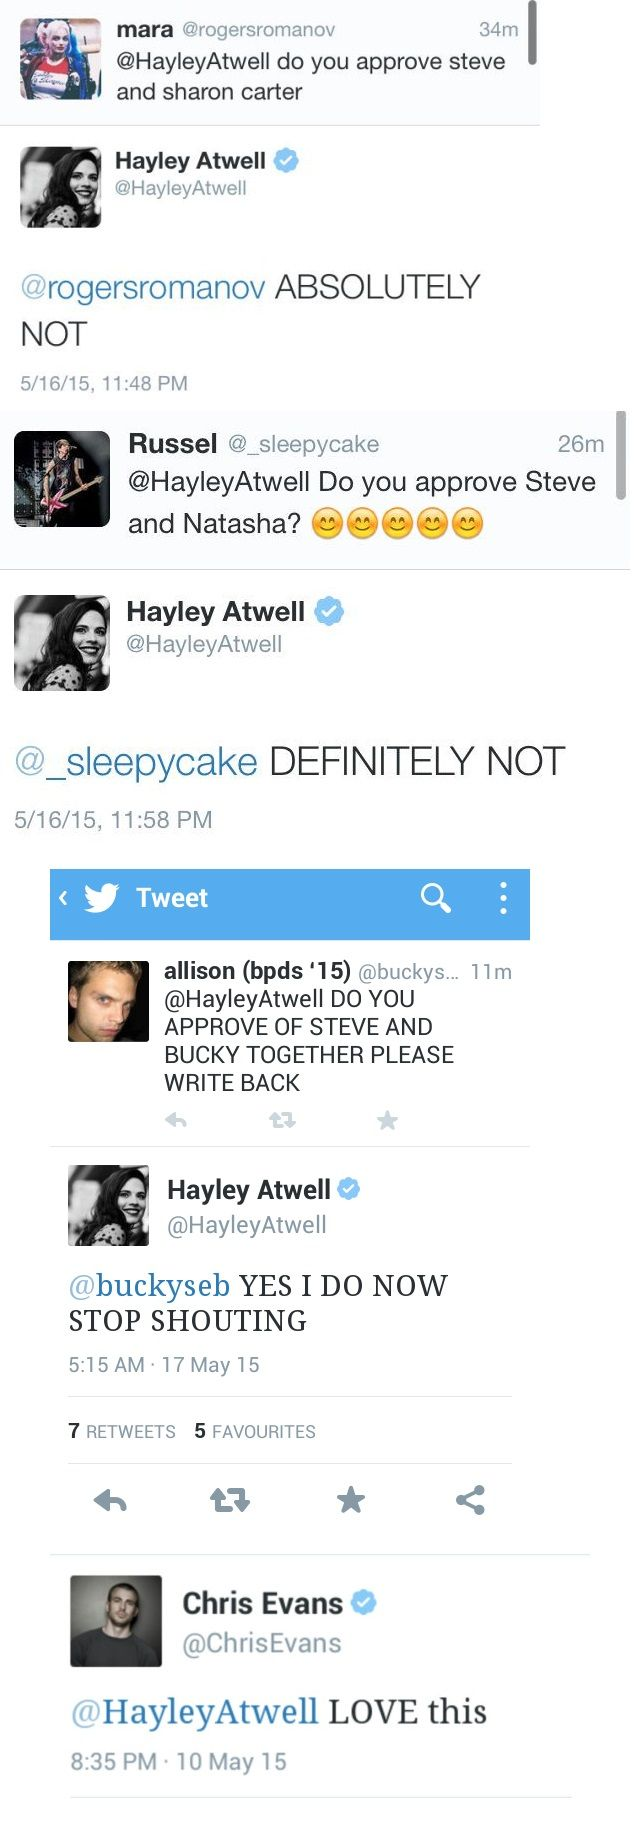 The beautiful Hayley Atwell shipping saga